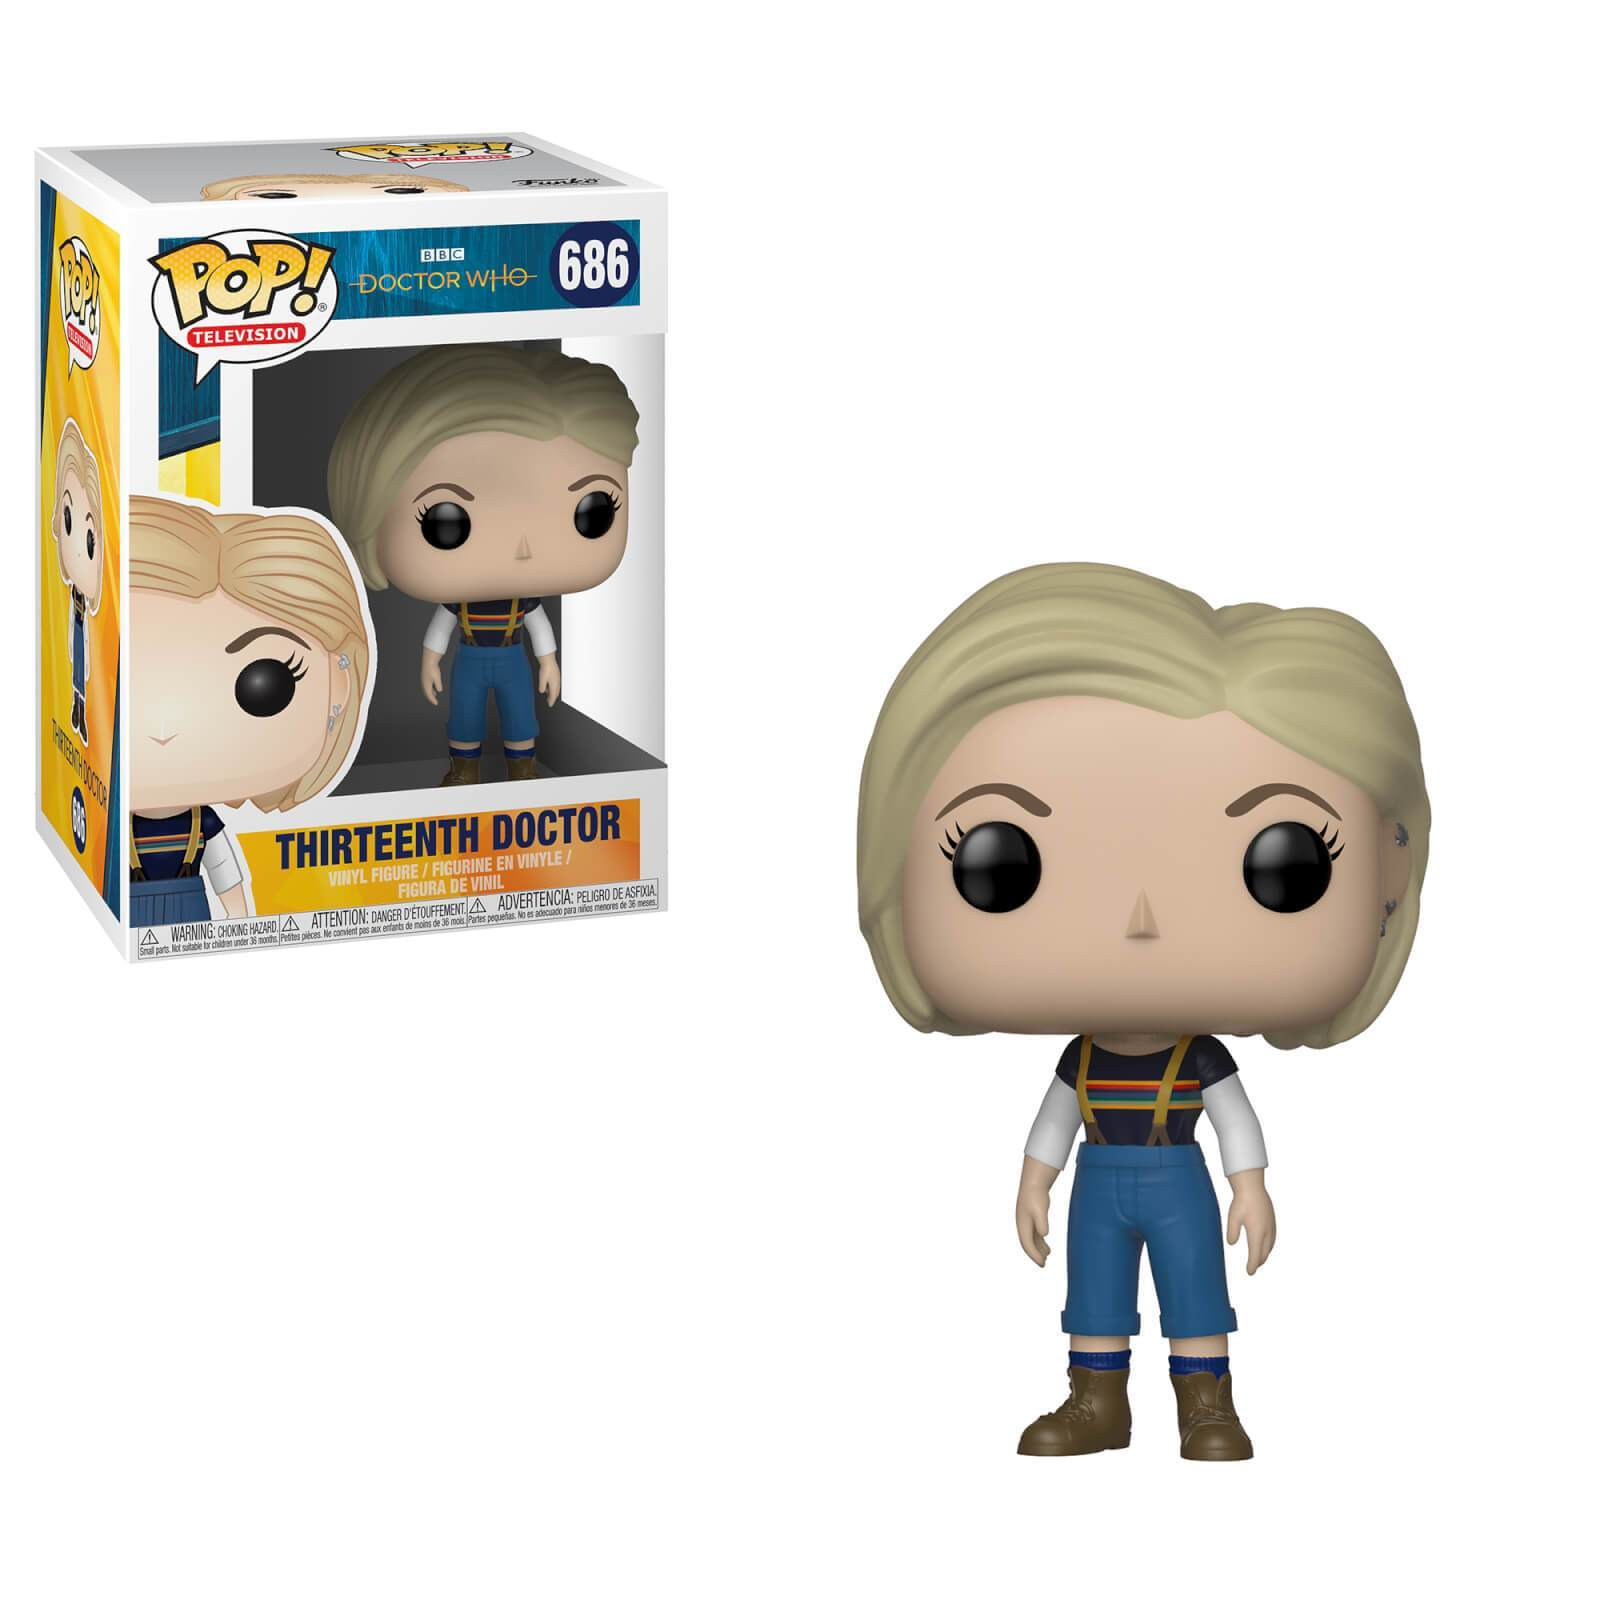 Dr Who - Thirteenth Doctor (without coat) Pop! 686 | Card Merchant NZ